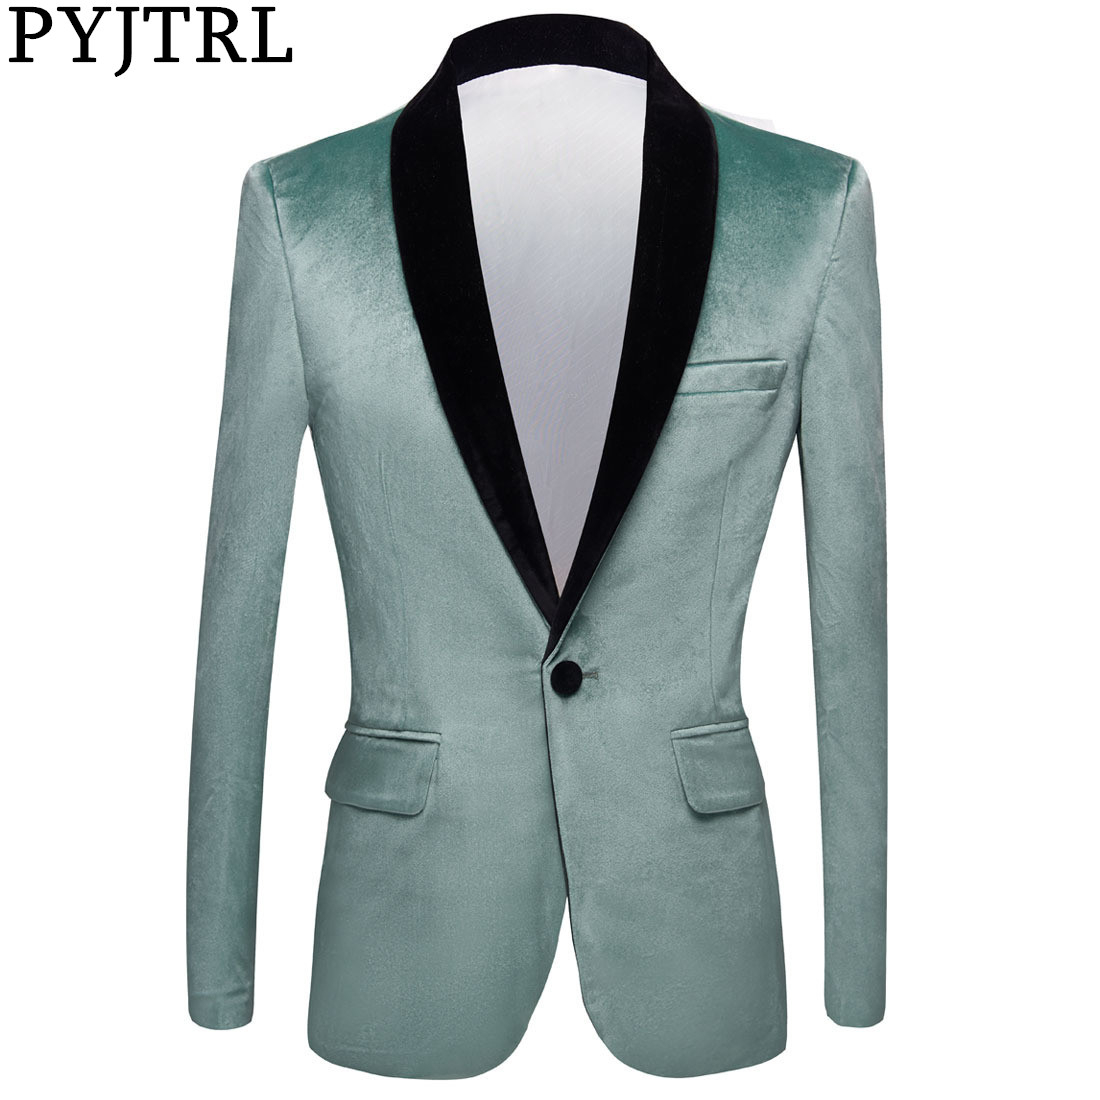 PYJTRL Men Fashion Autumn Turquoise Color Shawl Lapel Velvet Blazer Slim Fit Suit Jacket Wedding Groom Stage Singer Prom Costume